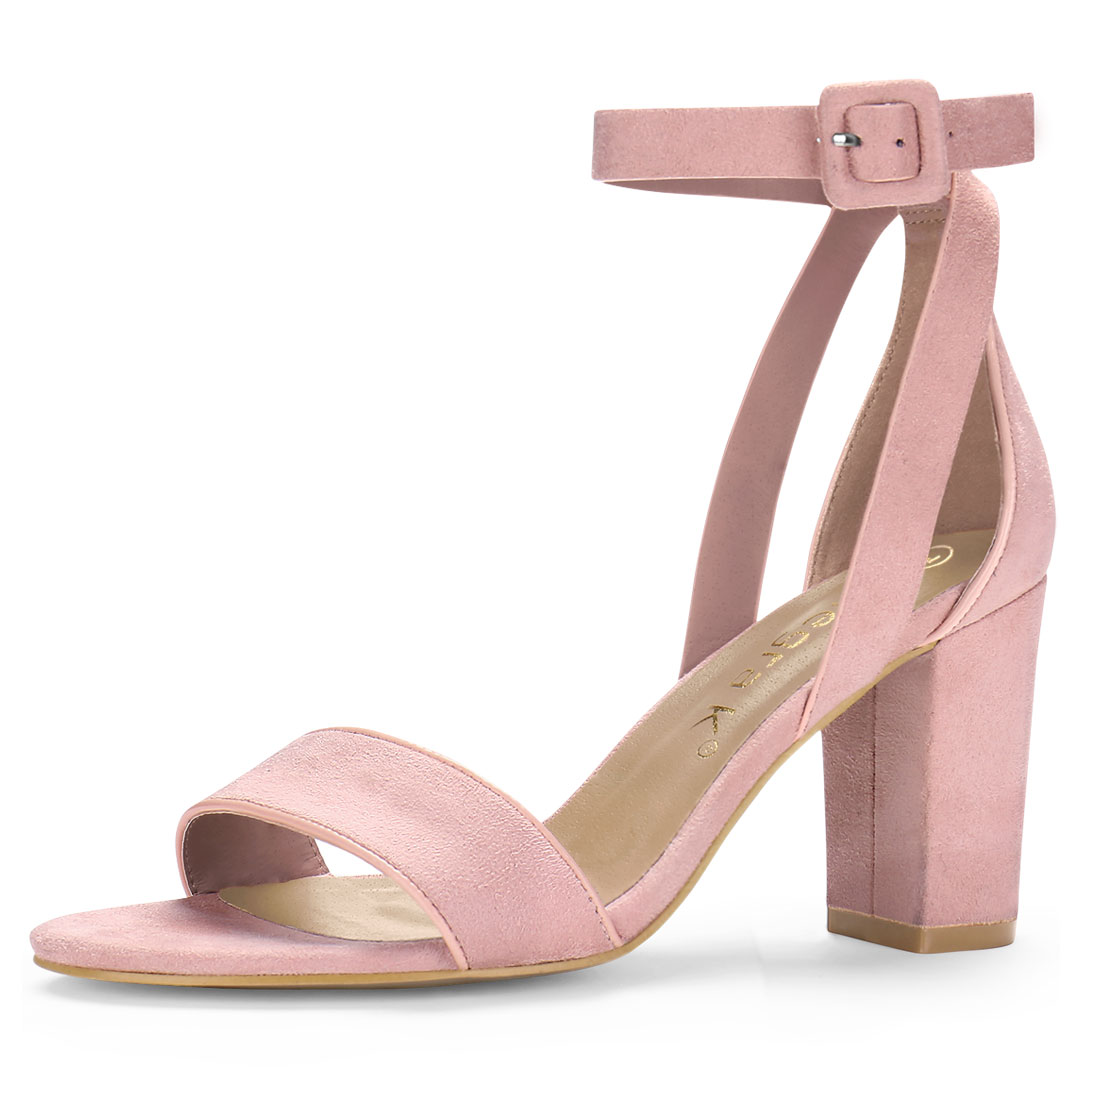 Women PU Panel Piped Chunky Heel Ankle Strap Sandals Light Pink US 7.5